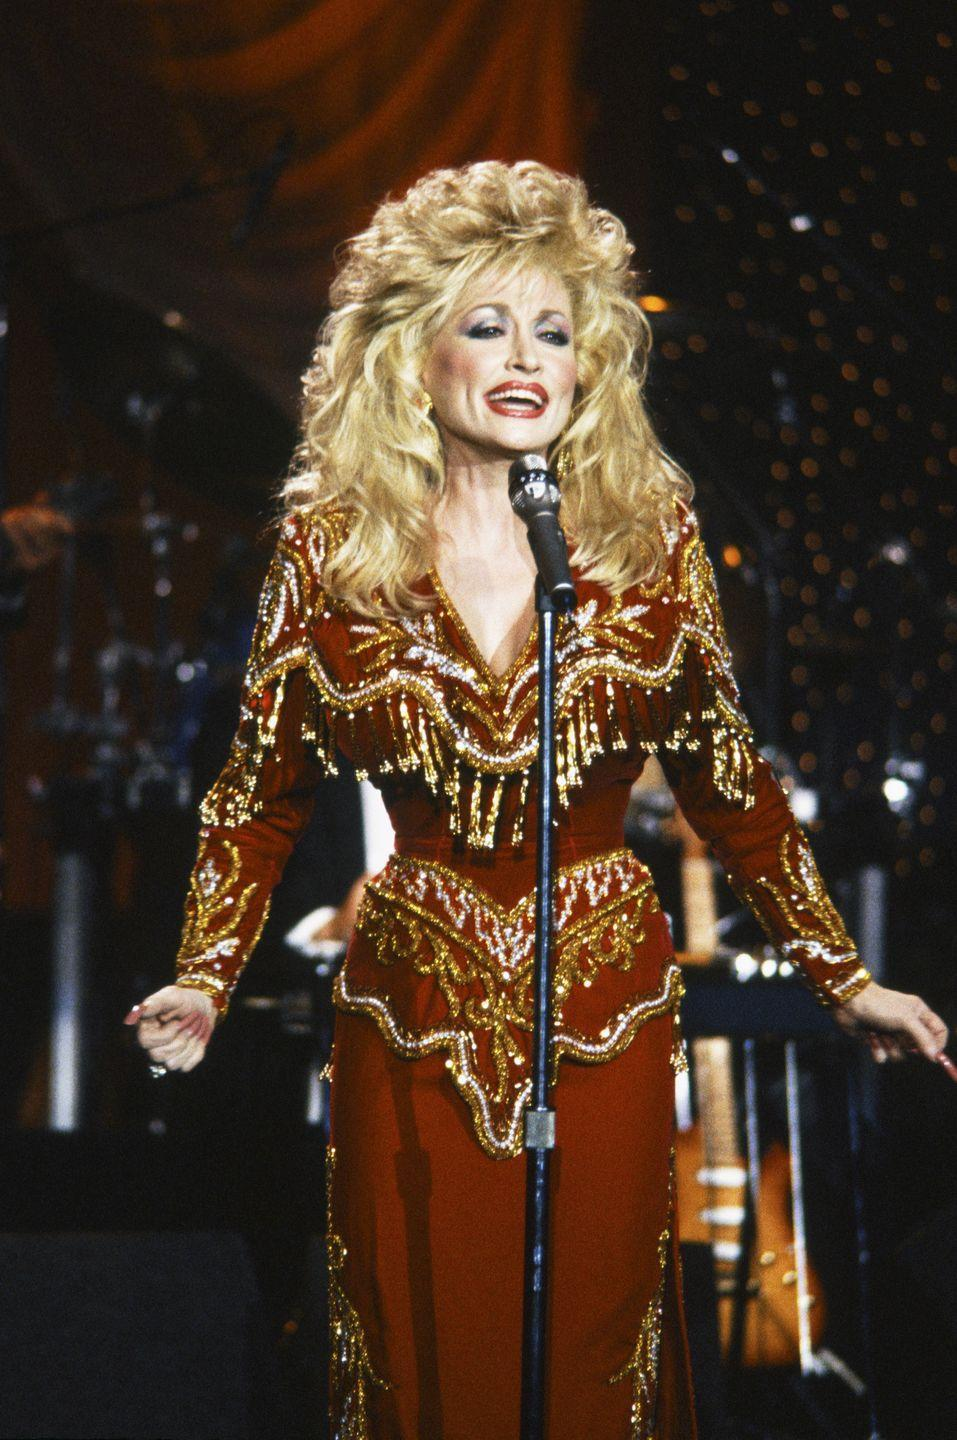 <p>In an outfit that's part bullfighter, part Gryffindor pageant queen, Parton performs on the <em>Tonight Show Starring Johnny Carson</em>. </p>